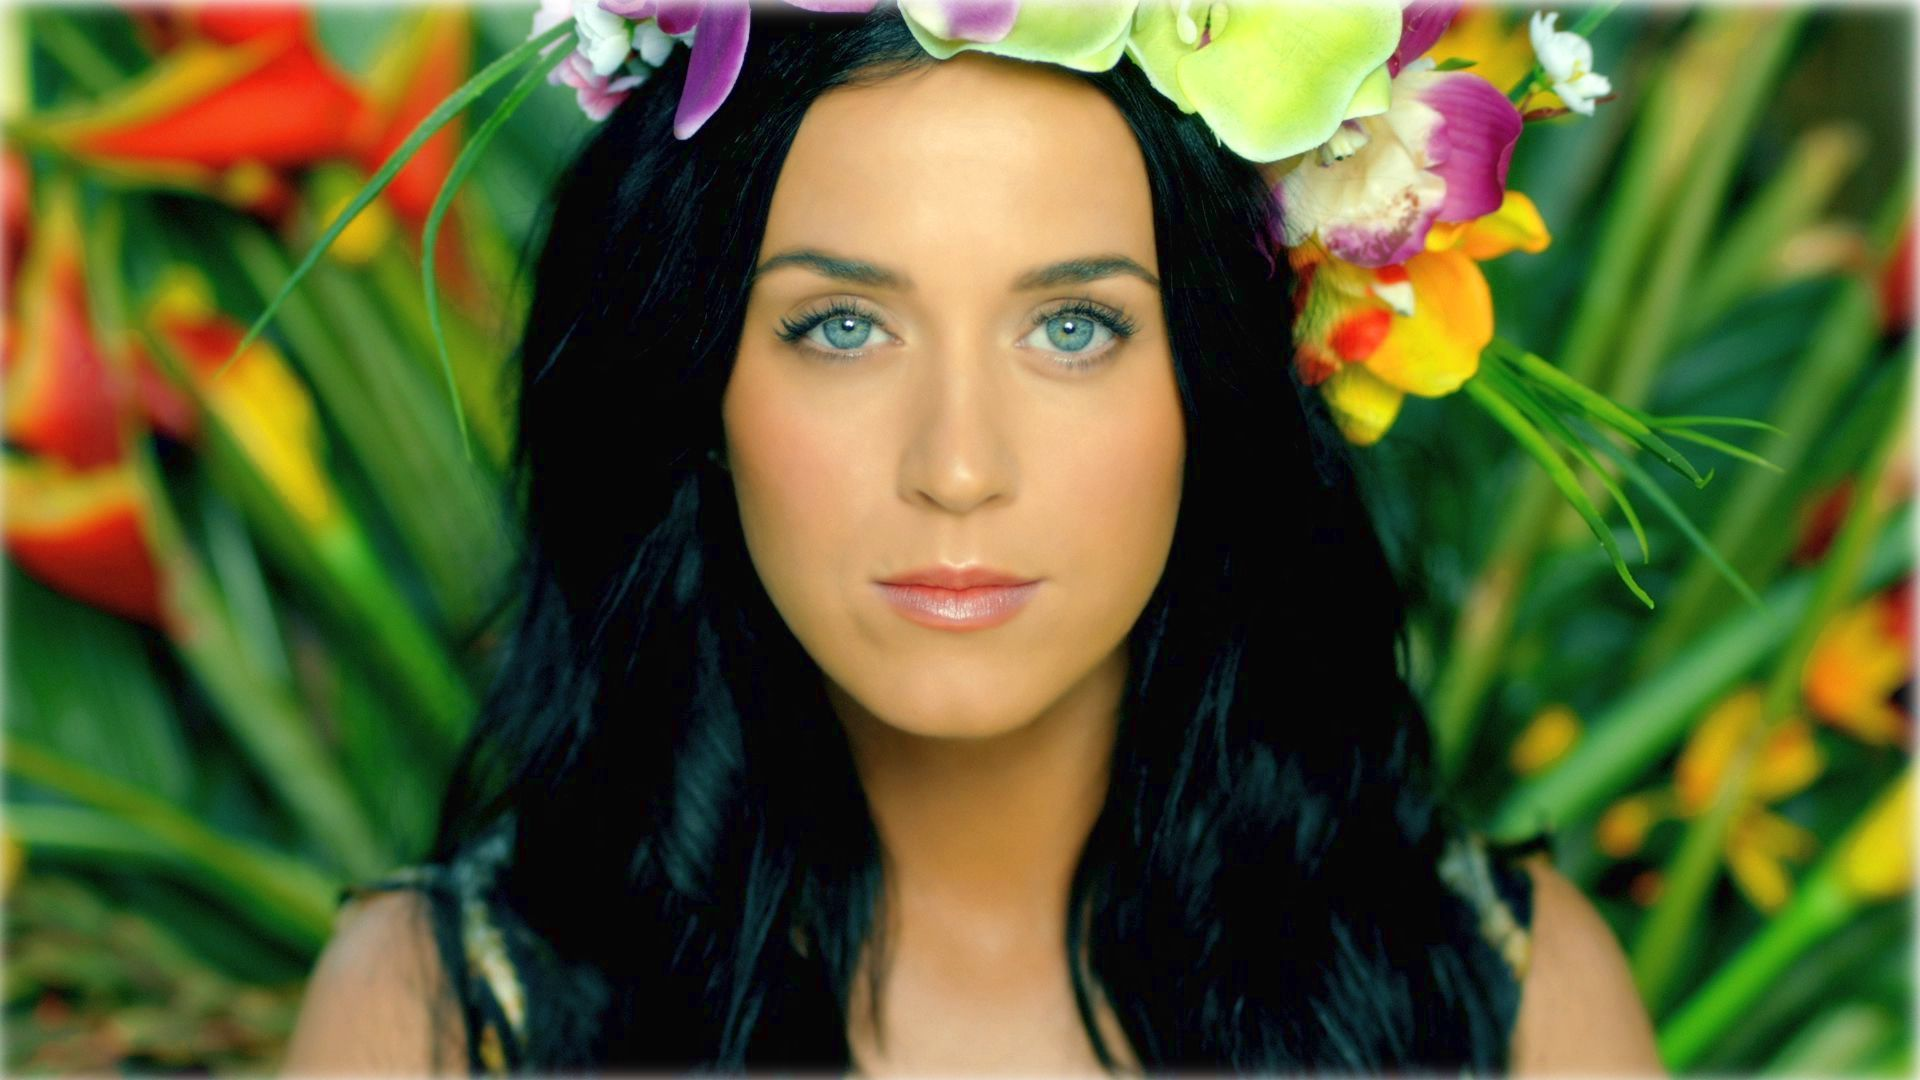 katy-perry-roar-wallpaper-10.jpg (1920×1080) | Ne Yok ki | Pinterest